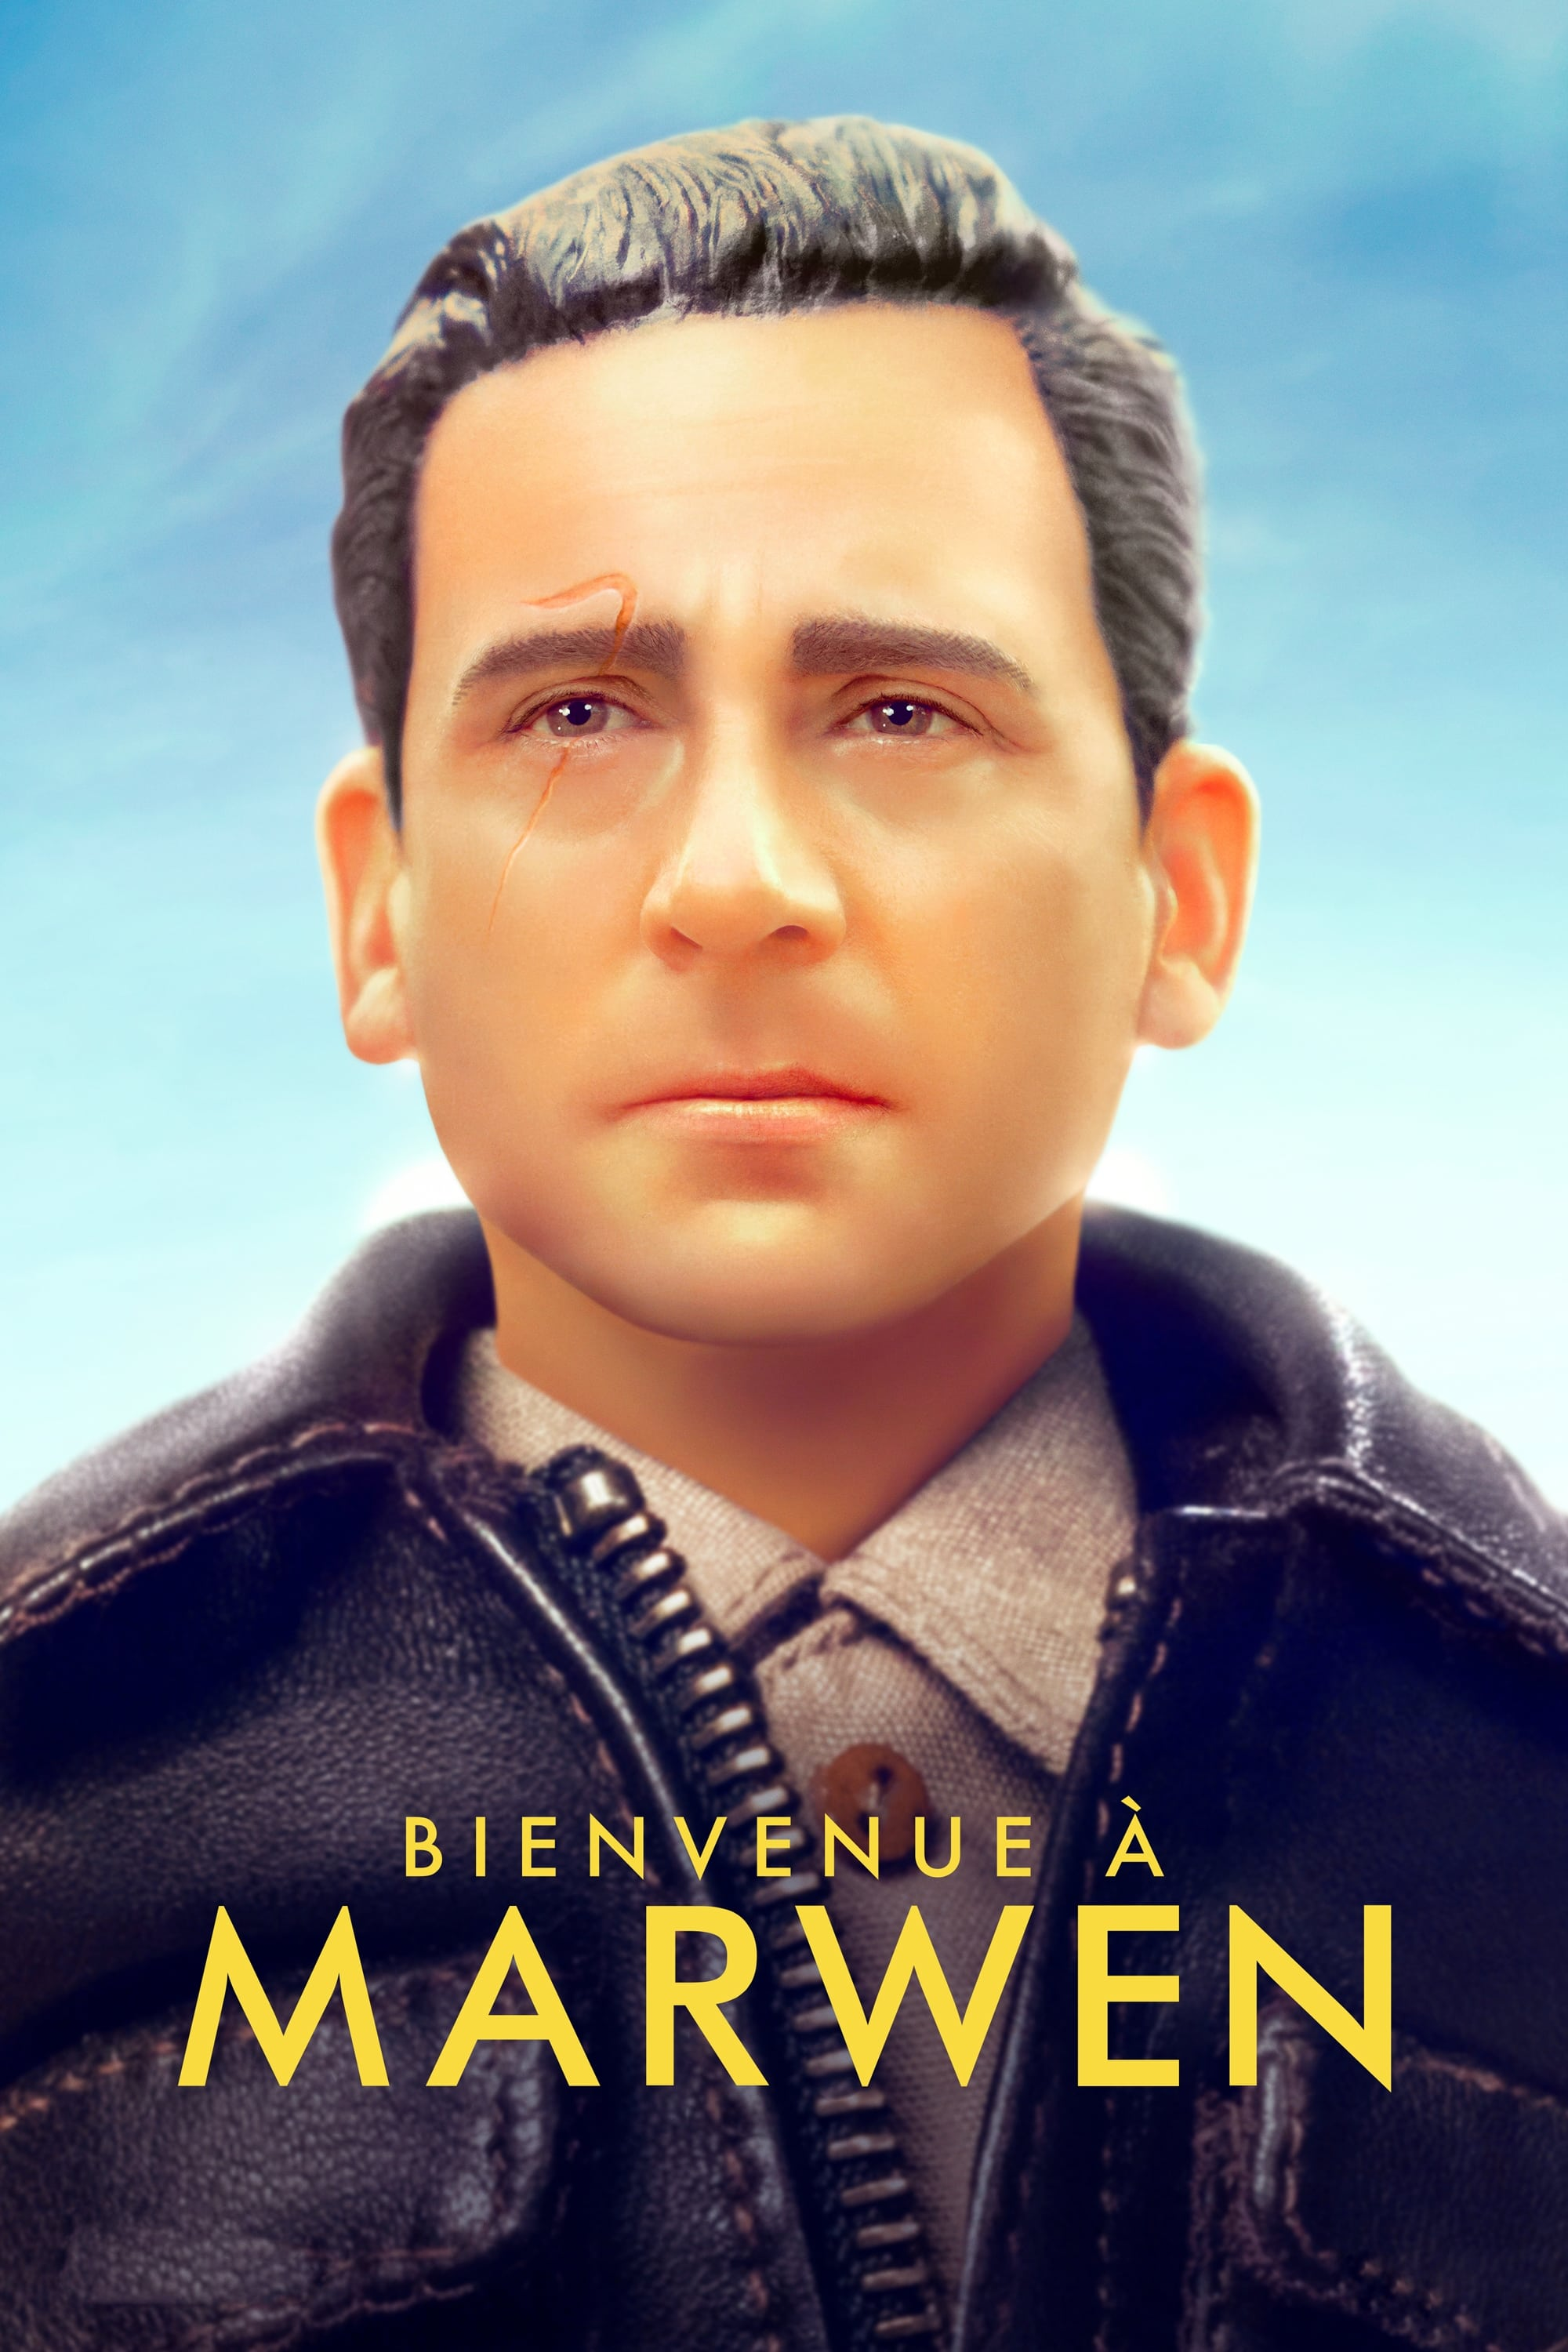 Bienvenue à Marwen streaming sur libertyvf